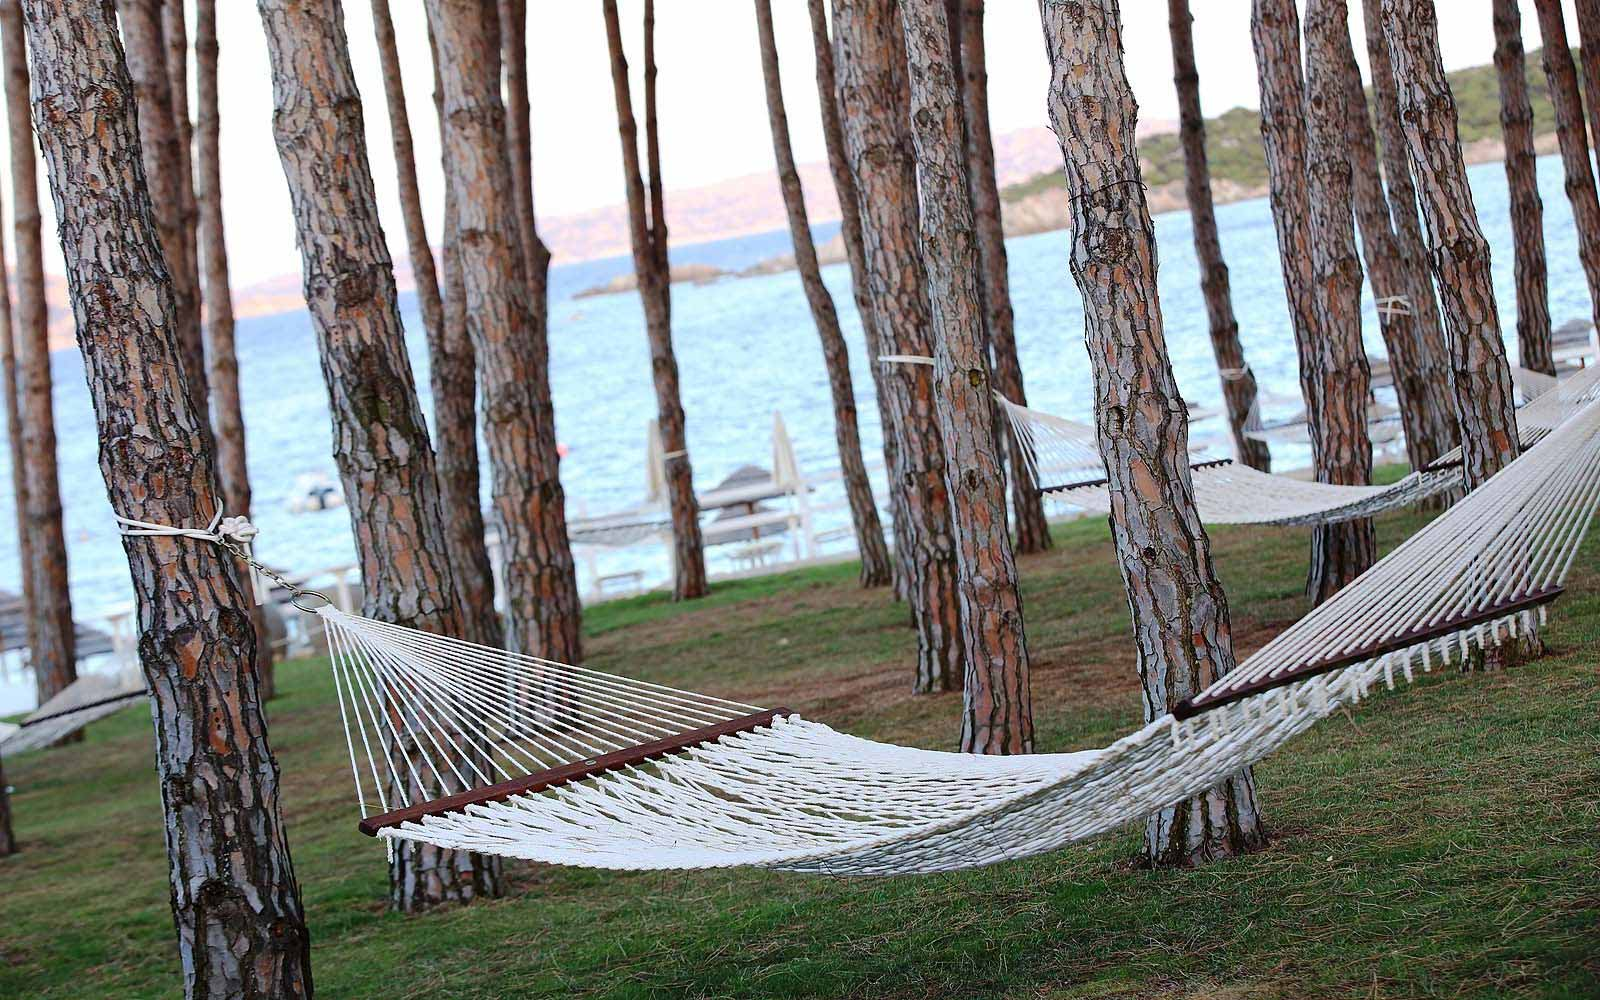 Relax and unwind at La Coluccia Hotel & Beach Club